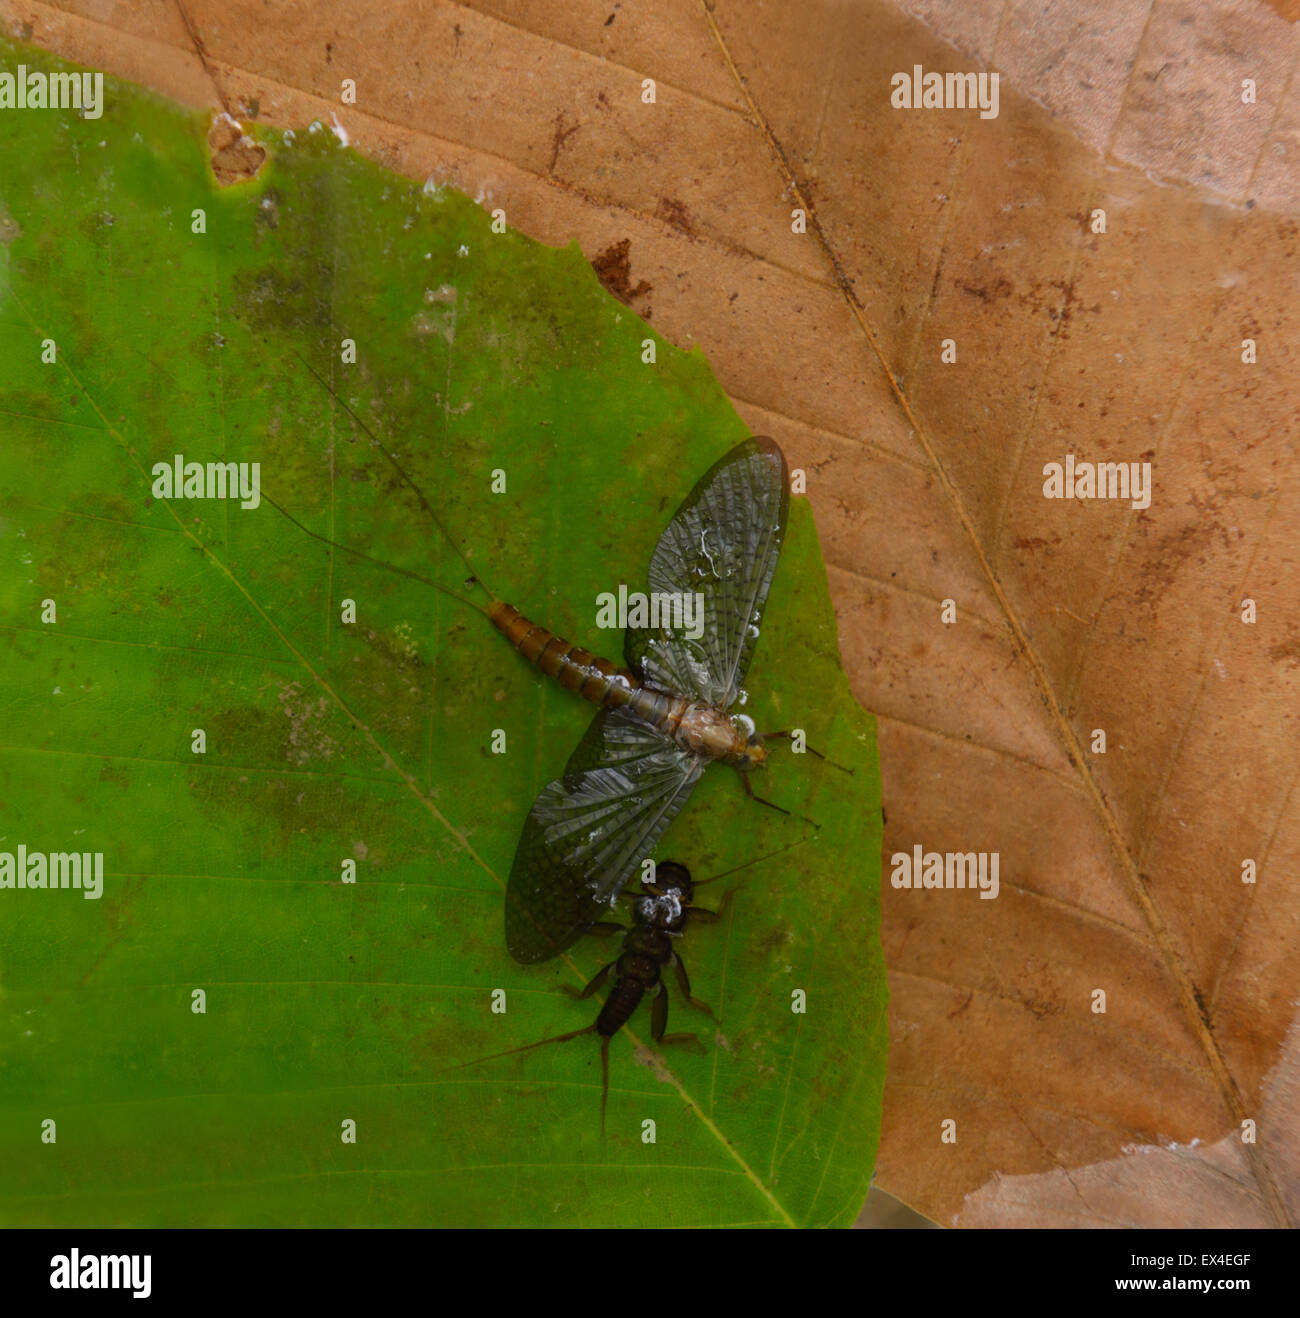 Stone fly (Order Plecoptera) nymph and adult fly - Stock Image